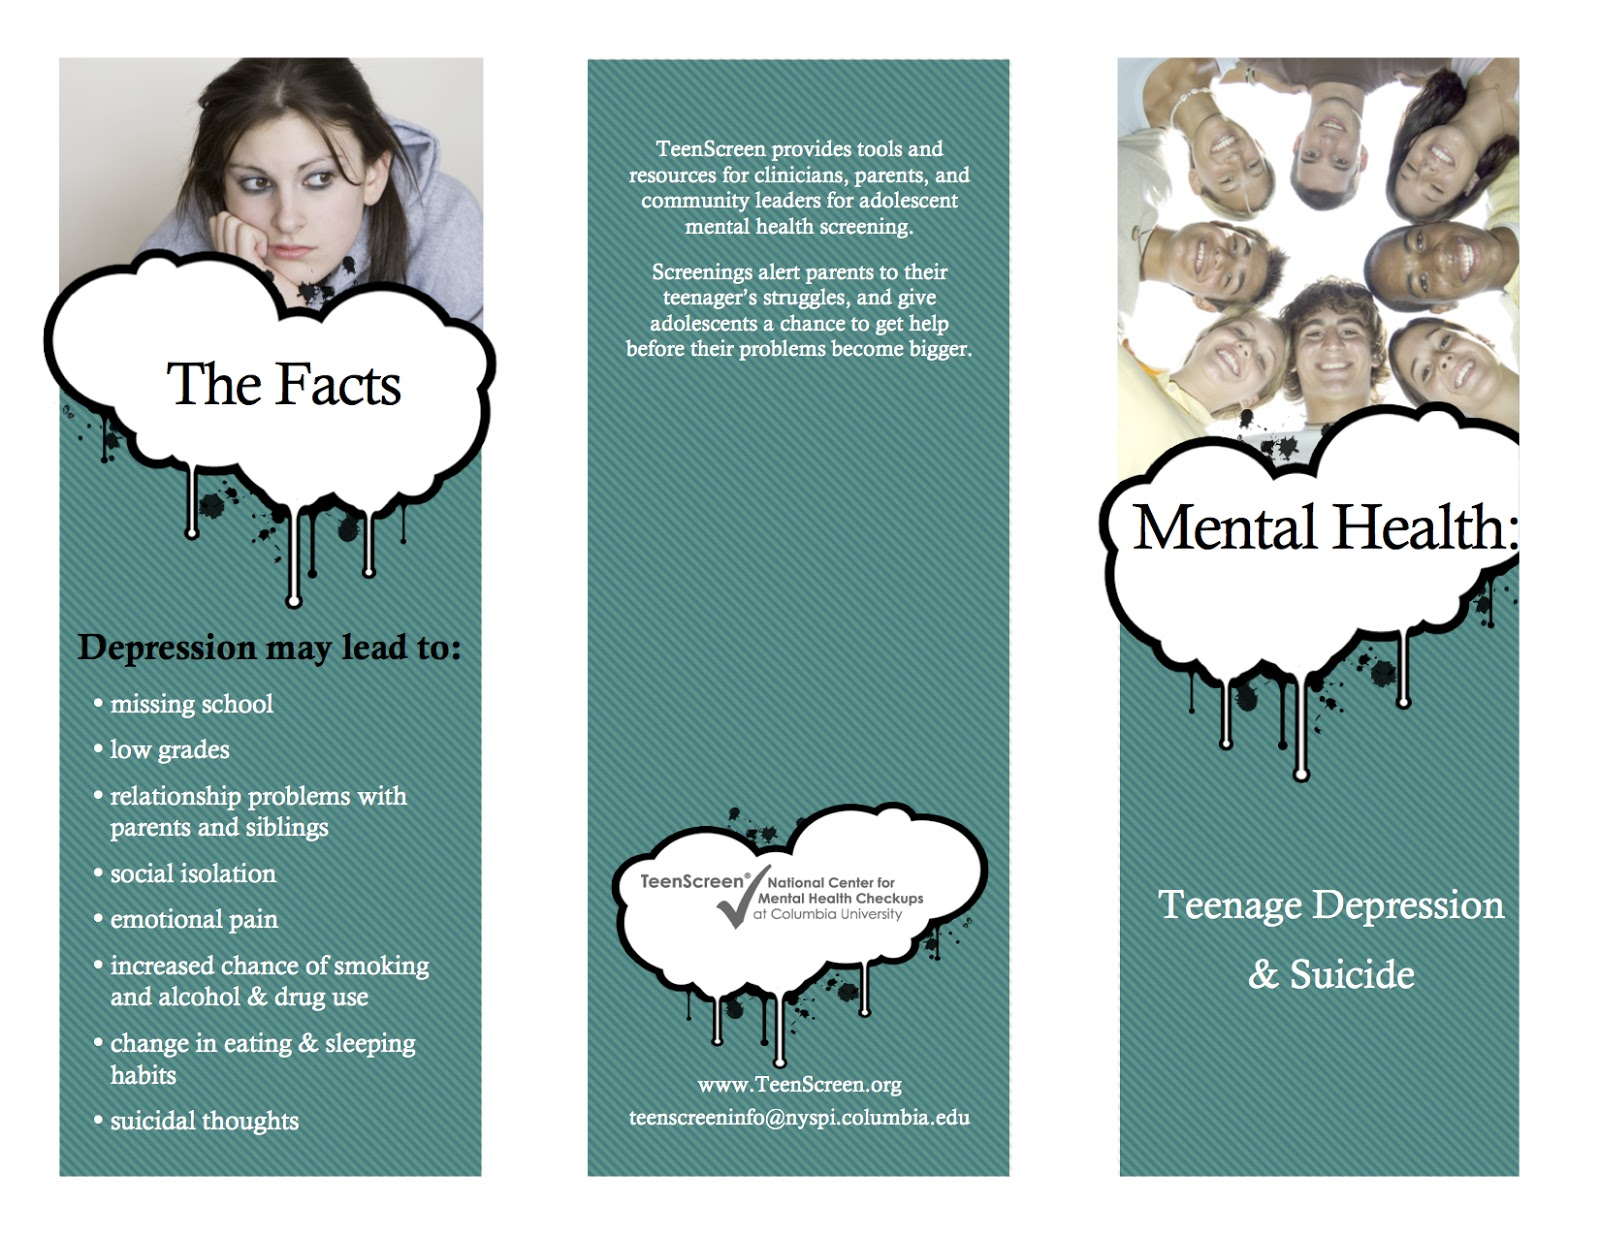 Striving for Mental Health: Teen Depression & Suicide Brochure